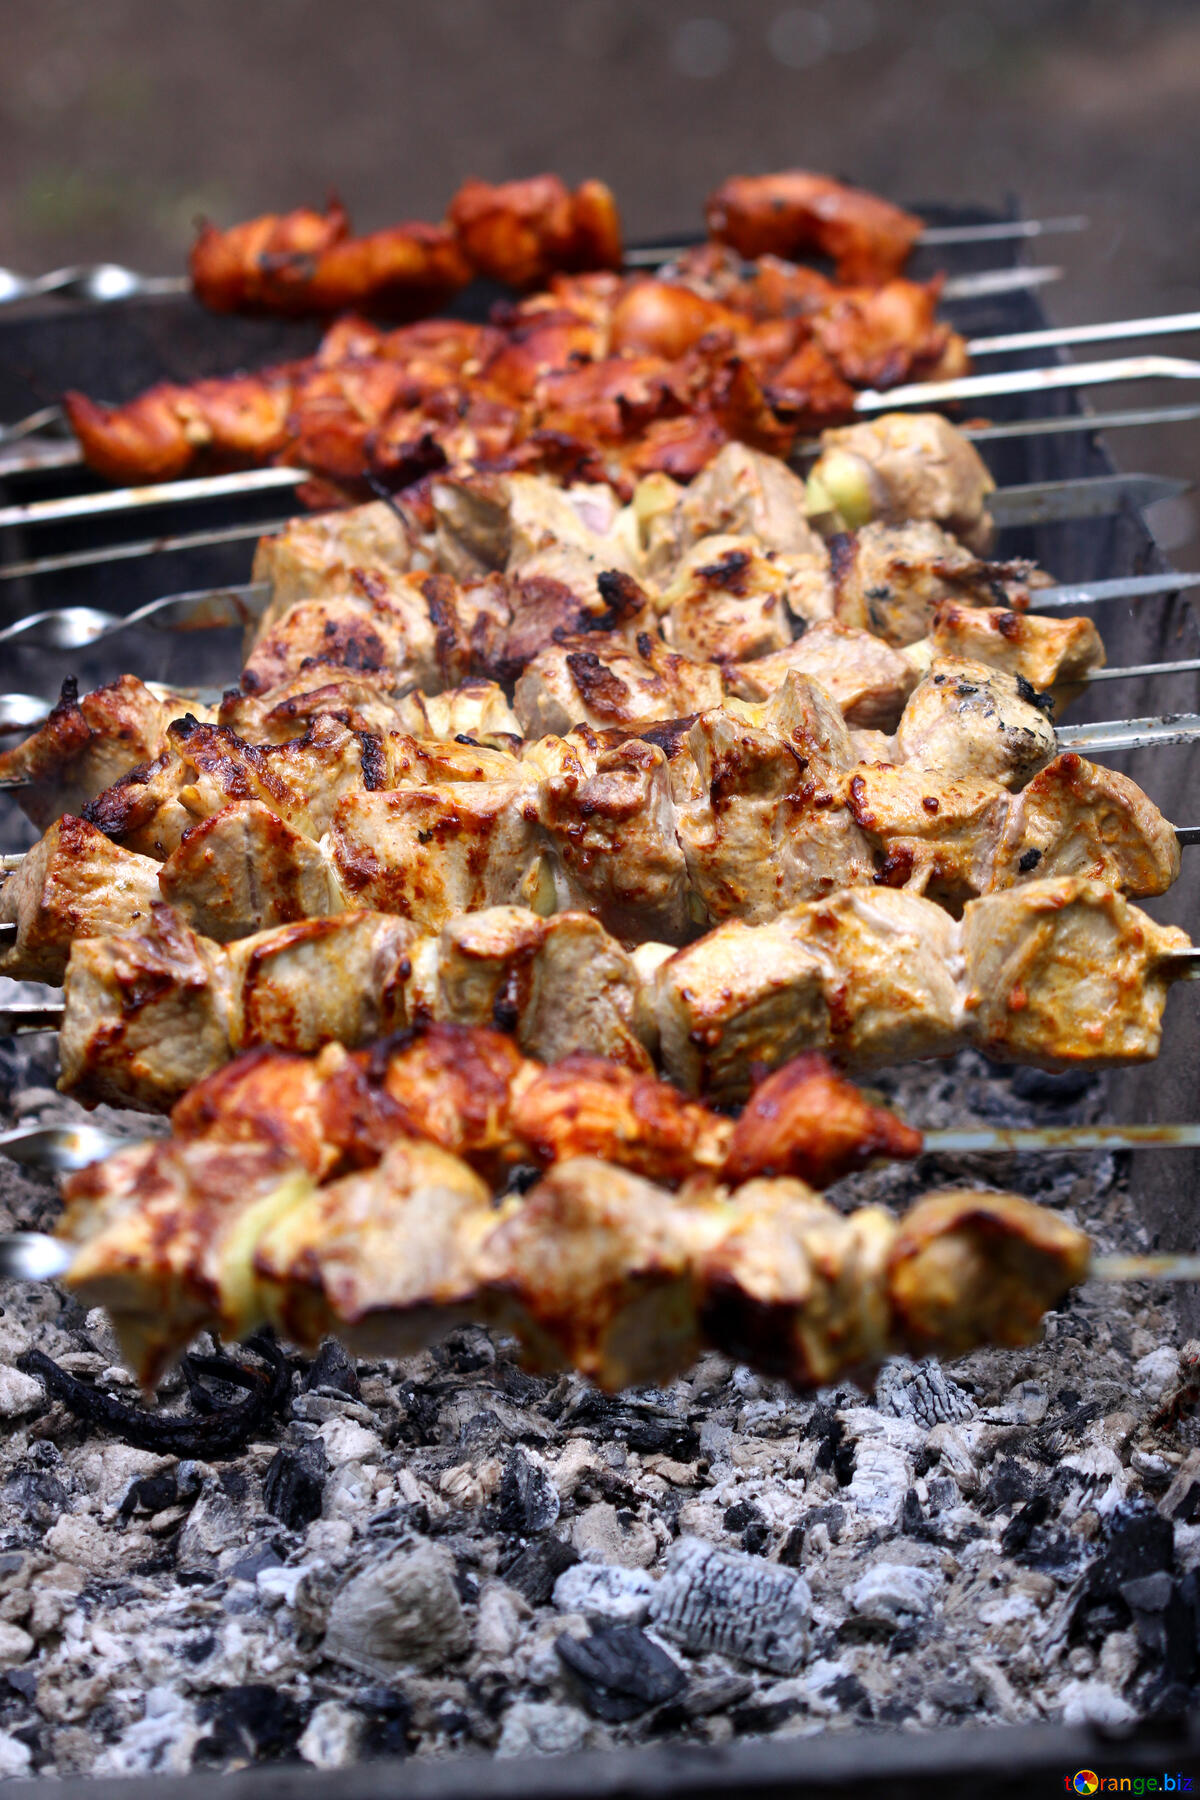 Anthony Bourdain Kolkata and Mumbai - Preparation of kebabs on the grill - photo from ©torange.biz under CC BY 4.0